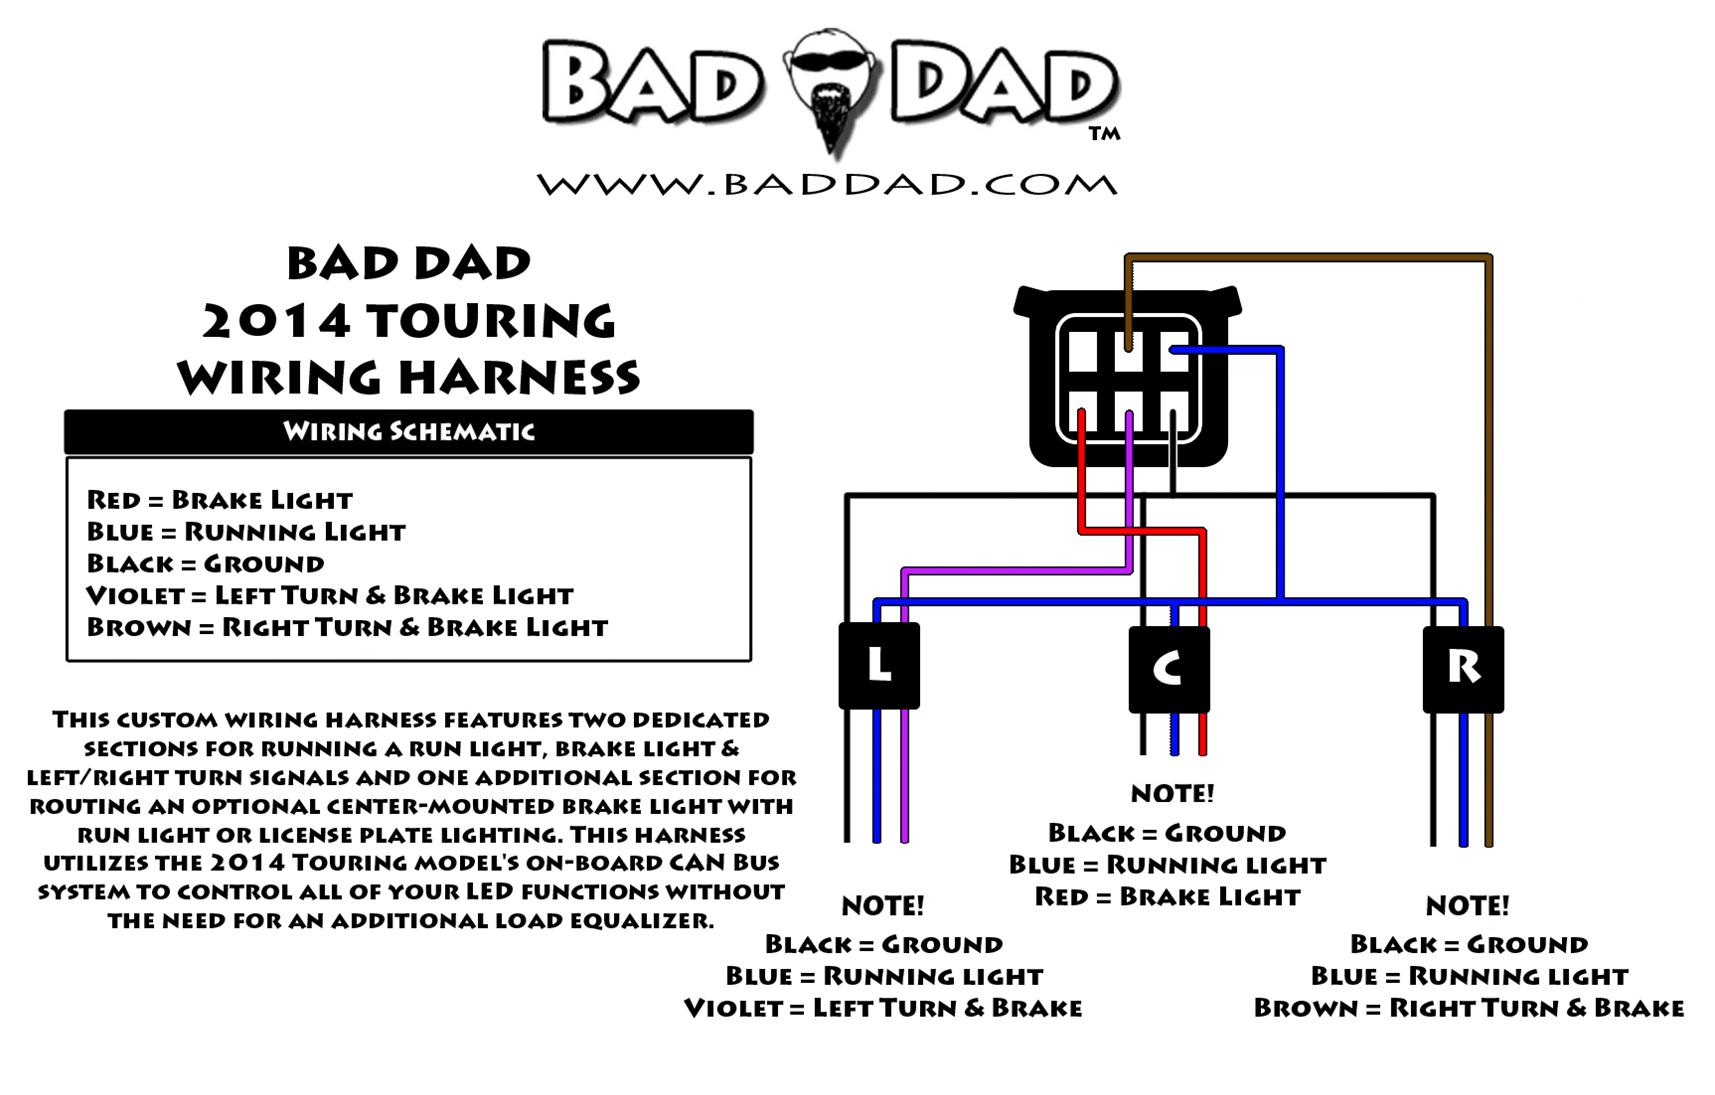 hight resolution of 1 bad dad s 2014 wiring harness features 3 sections 1 center